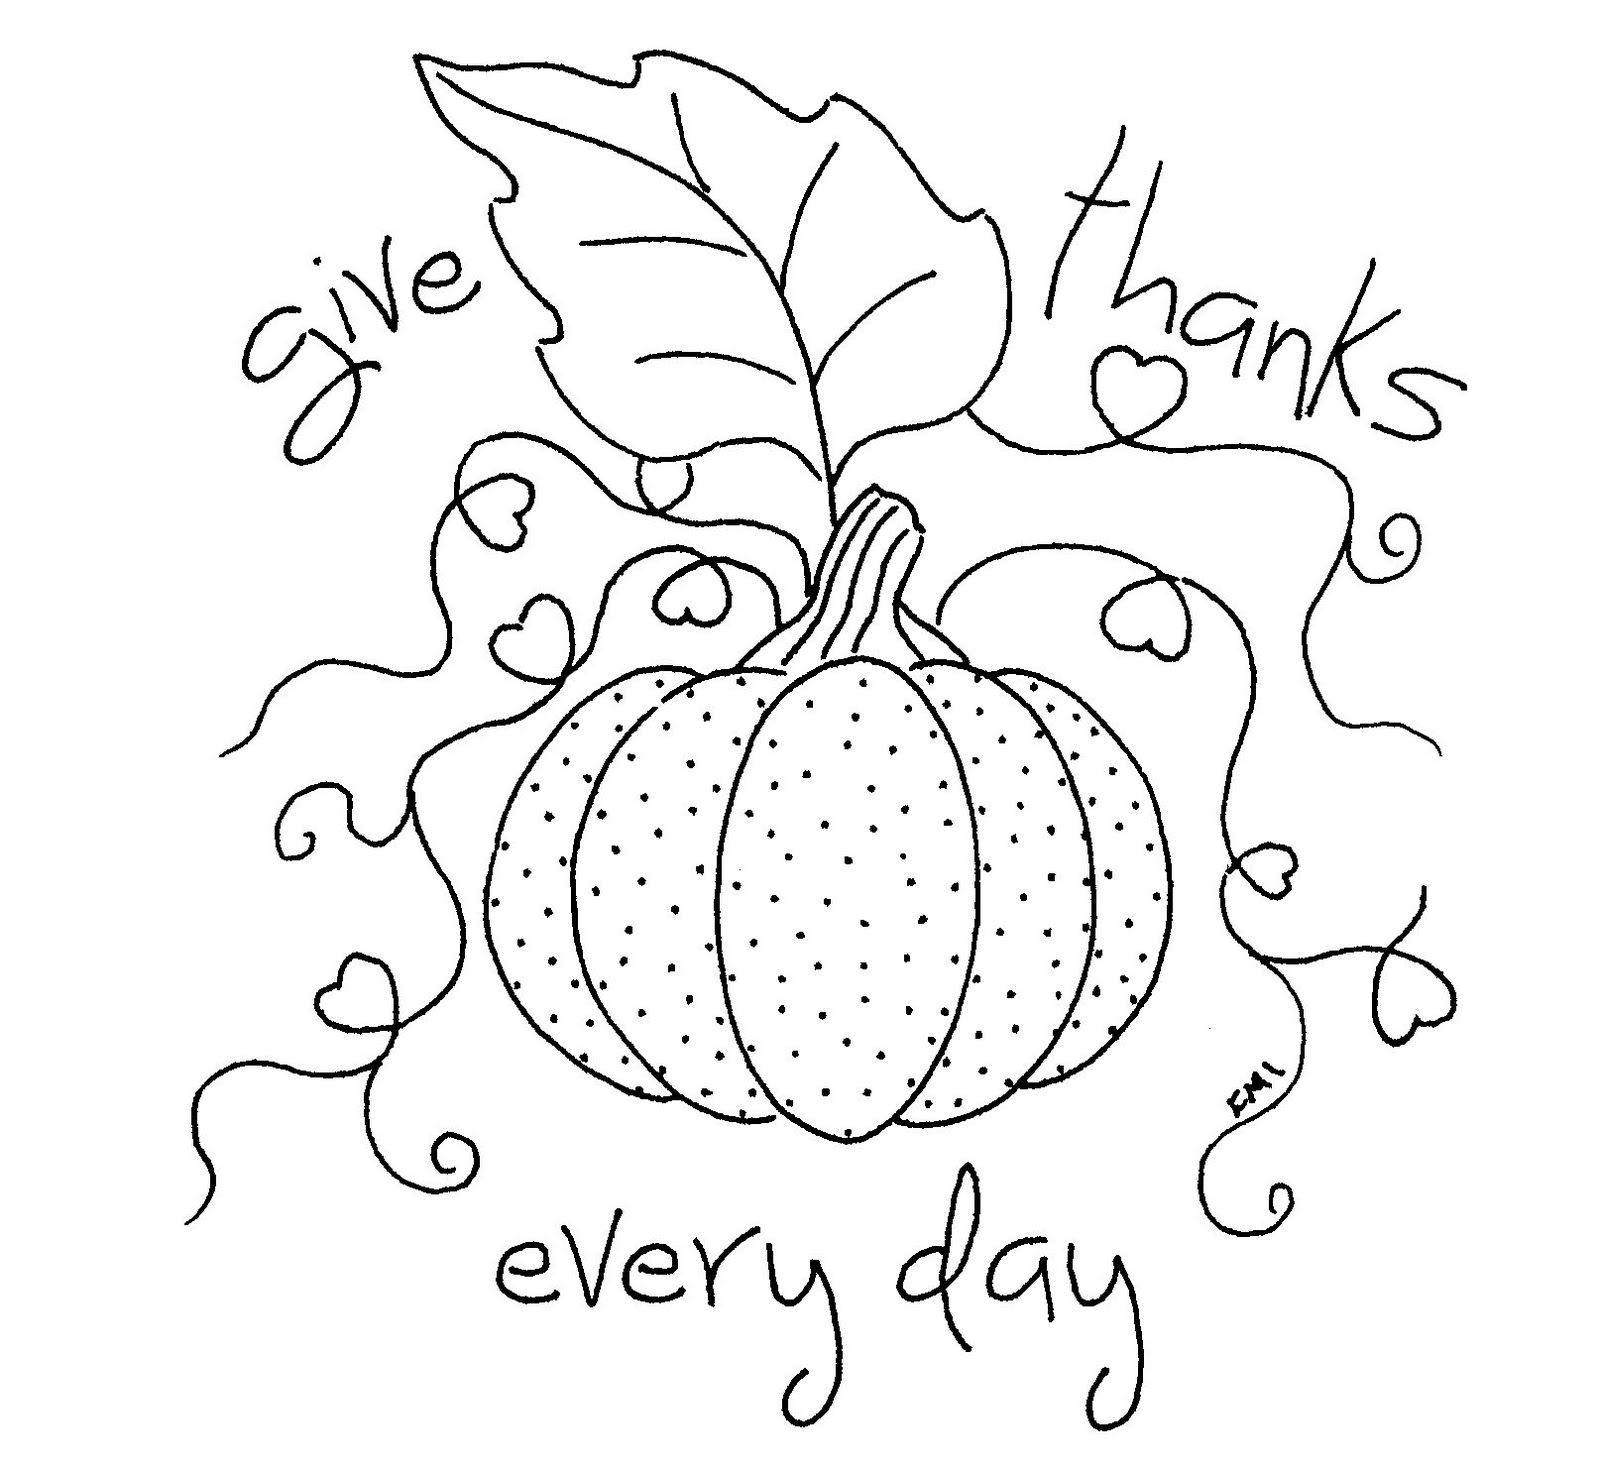 It is the time of year to focus on giving thanks but why do we give thanks pumpkin fall embroidery primitive embroidery patterns bankloansurffo Gallery